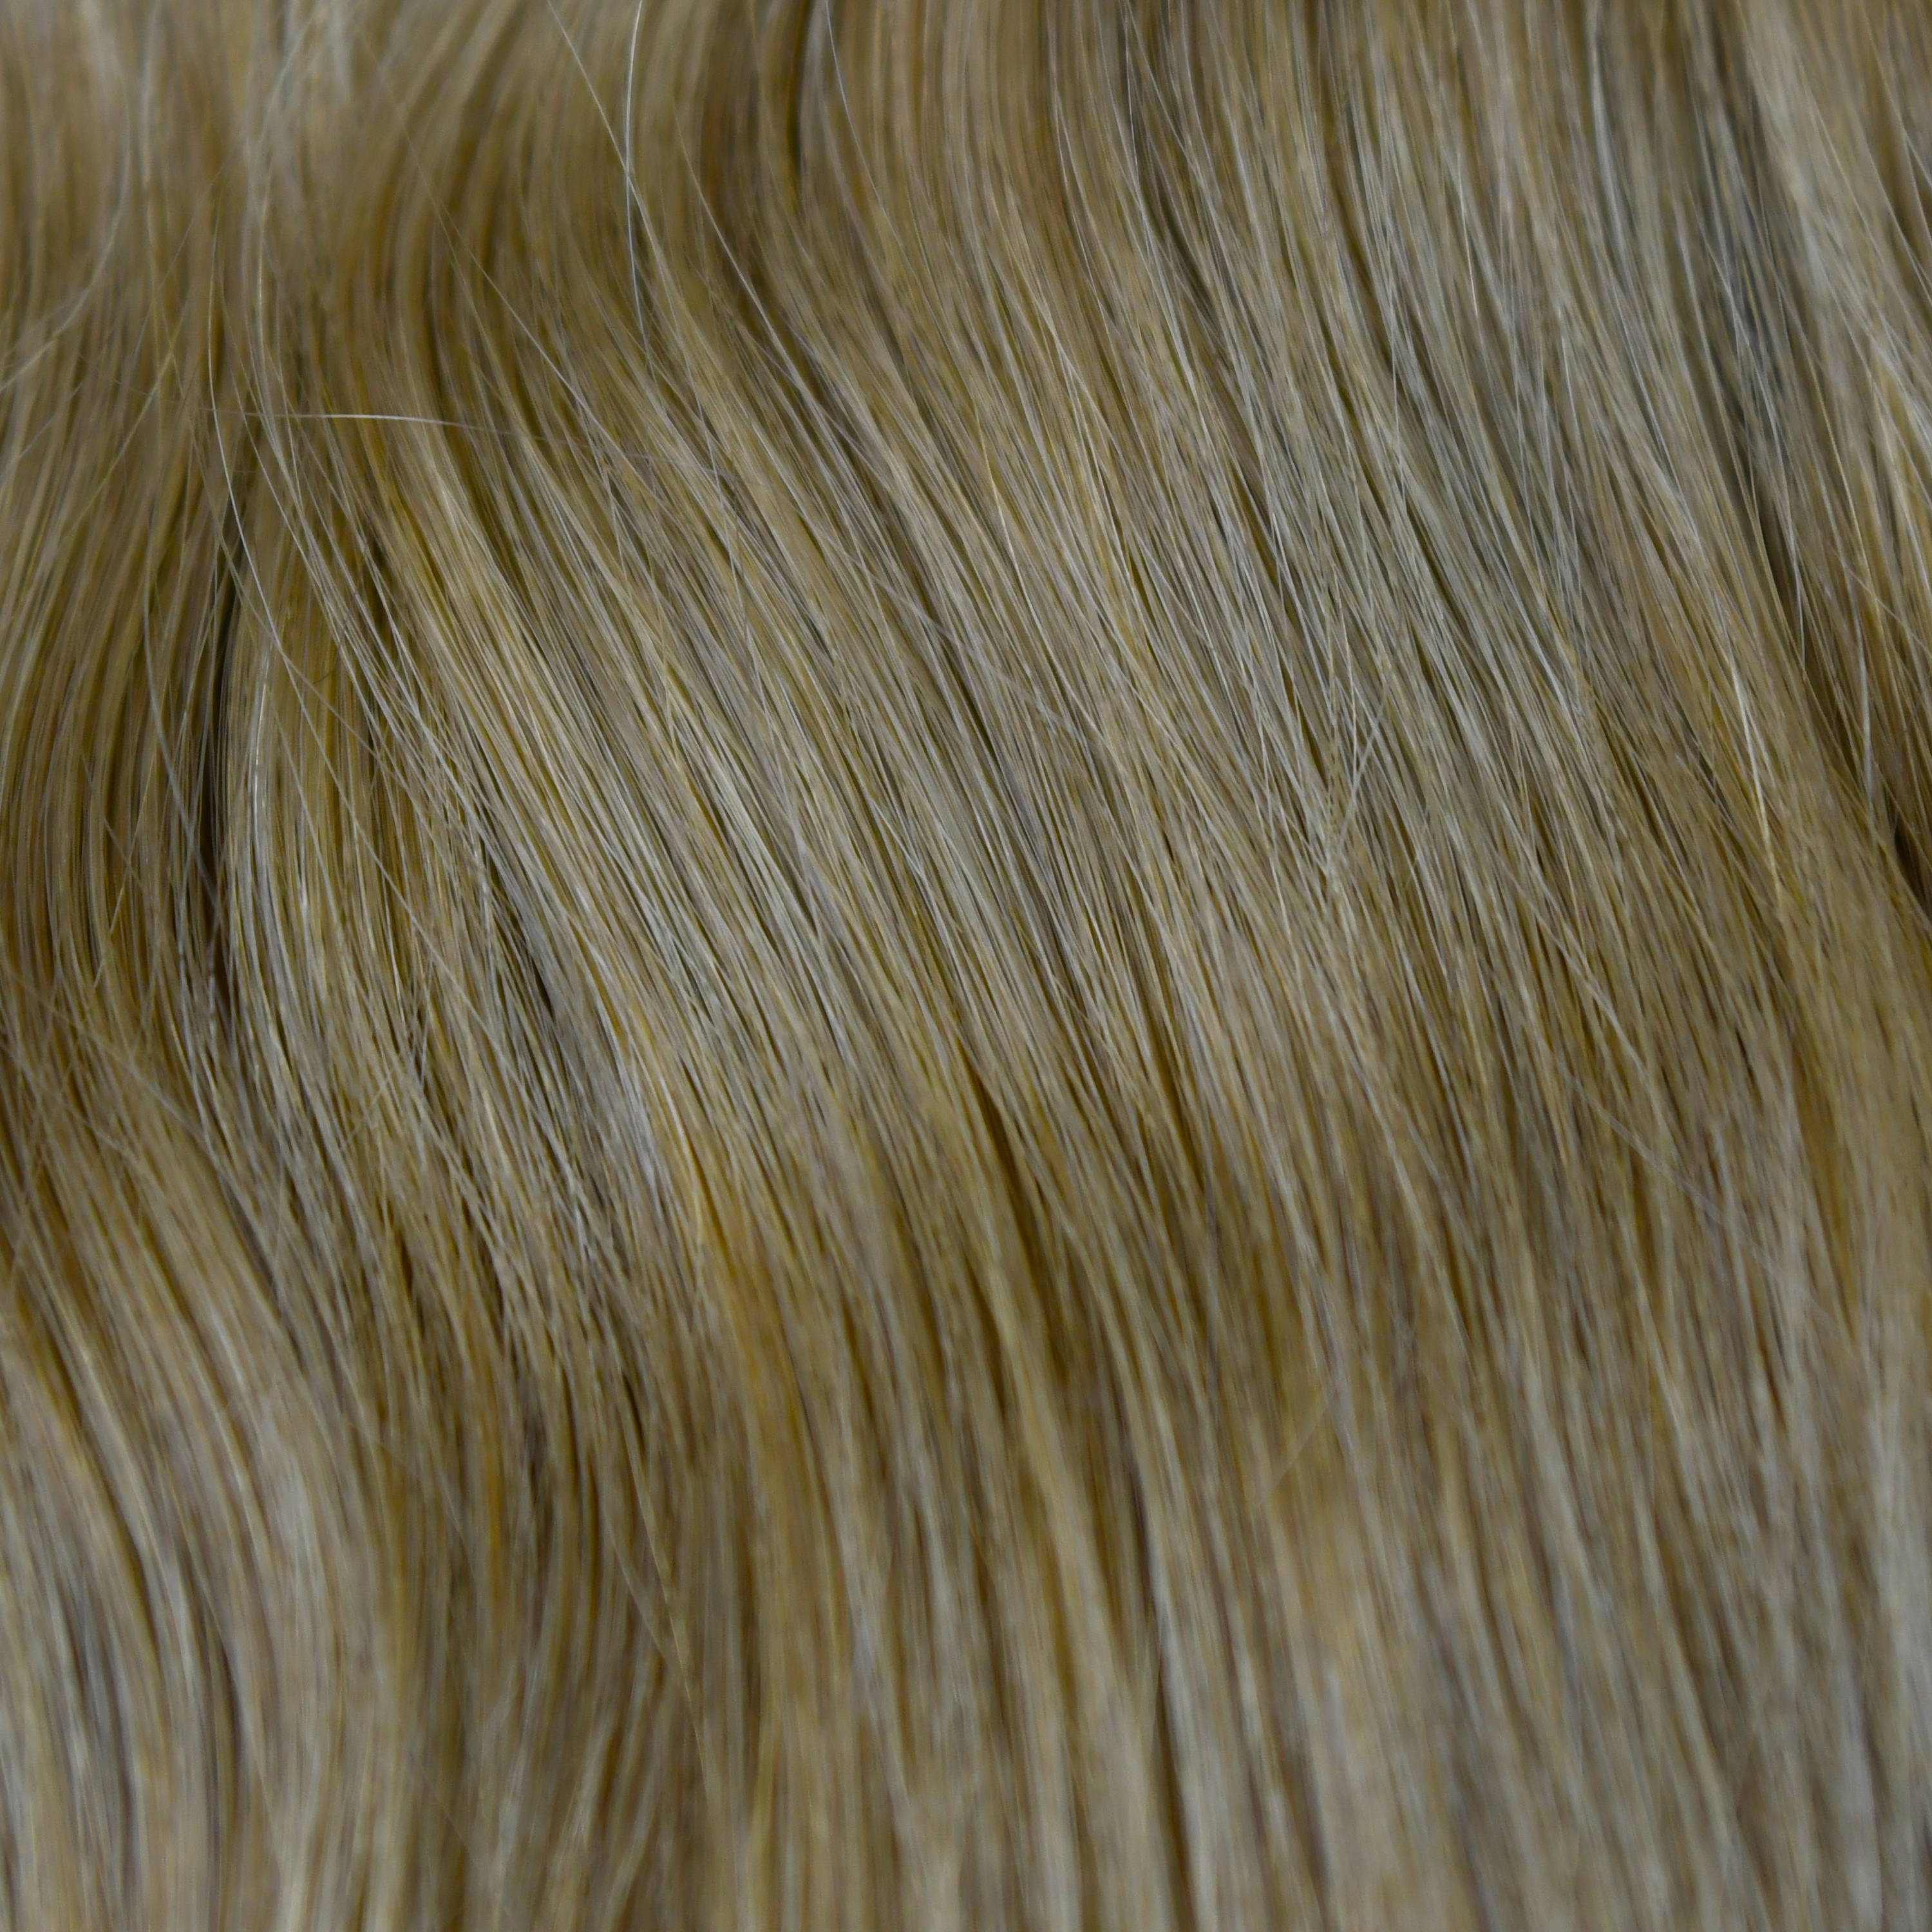 medium natural blond color hair help to choose hair extensions color in hair color chart